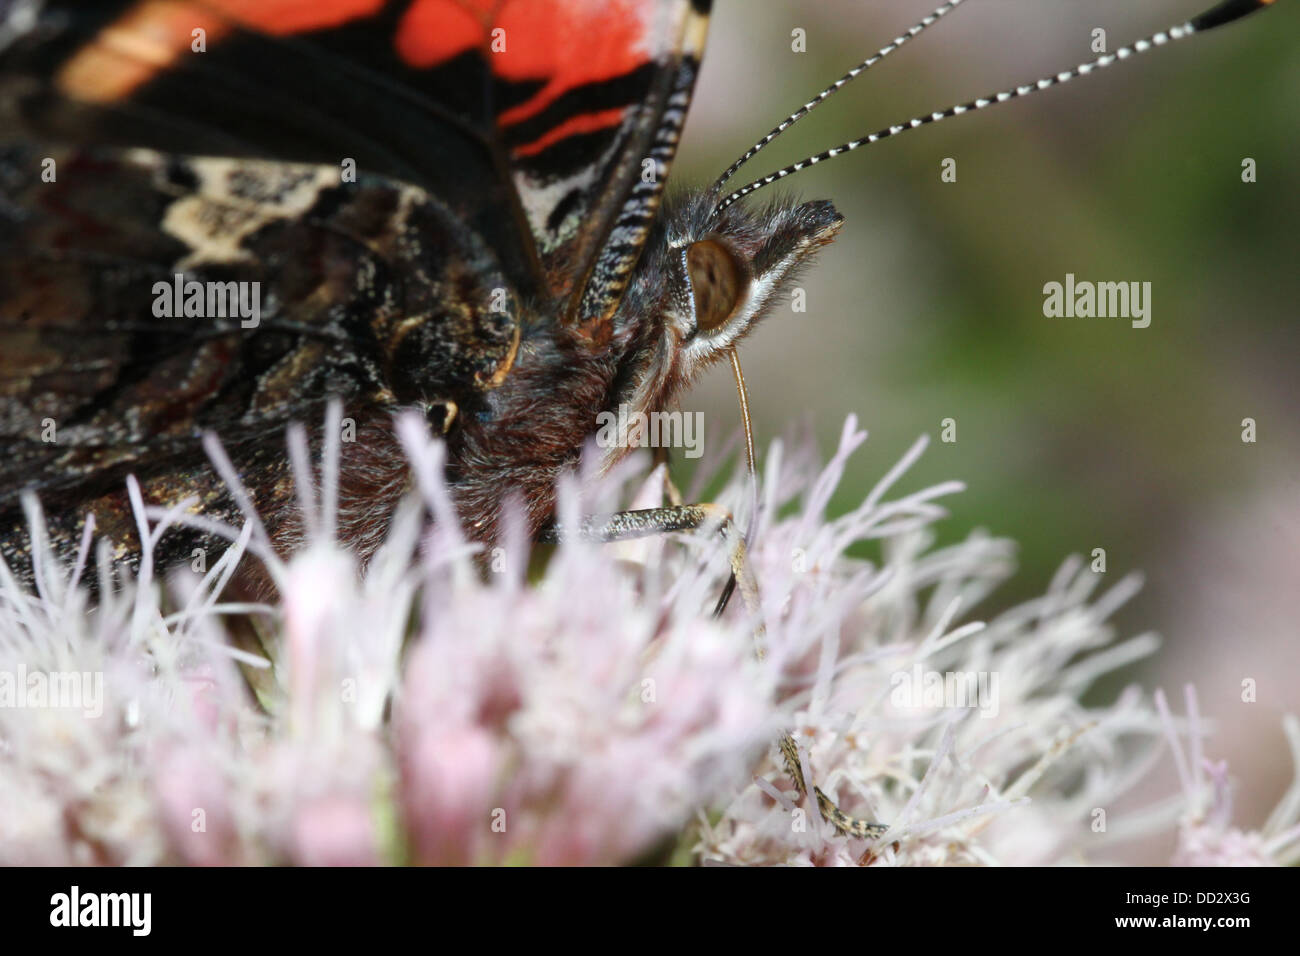 Extreme close-up of the head and  body of  a Red admiral butterfly (vanessa atalanta) foraging on a flower - Stock Image